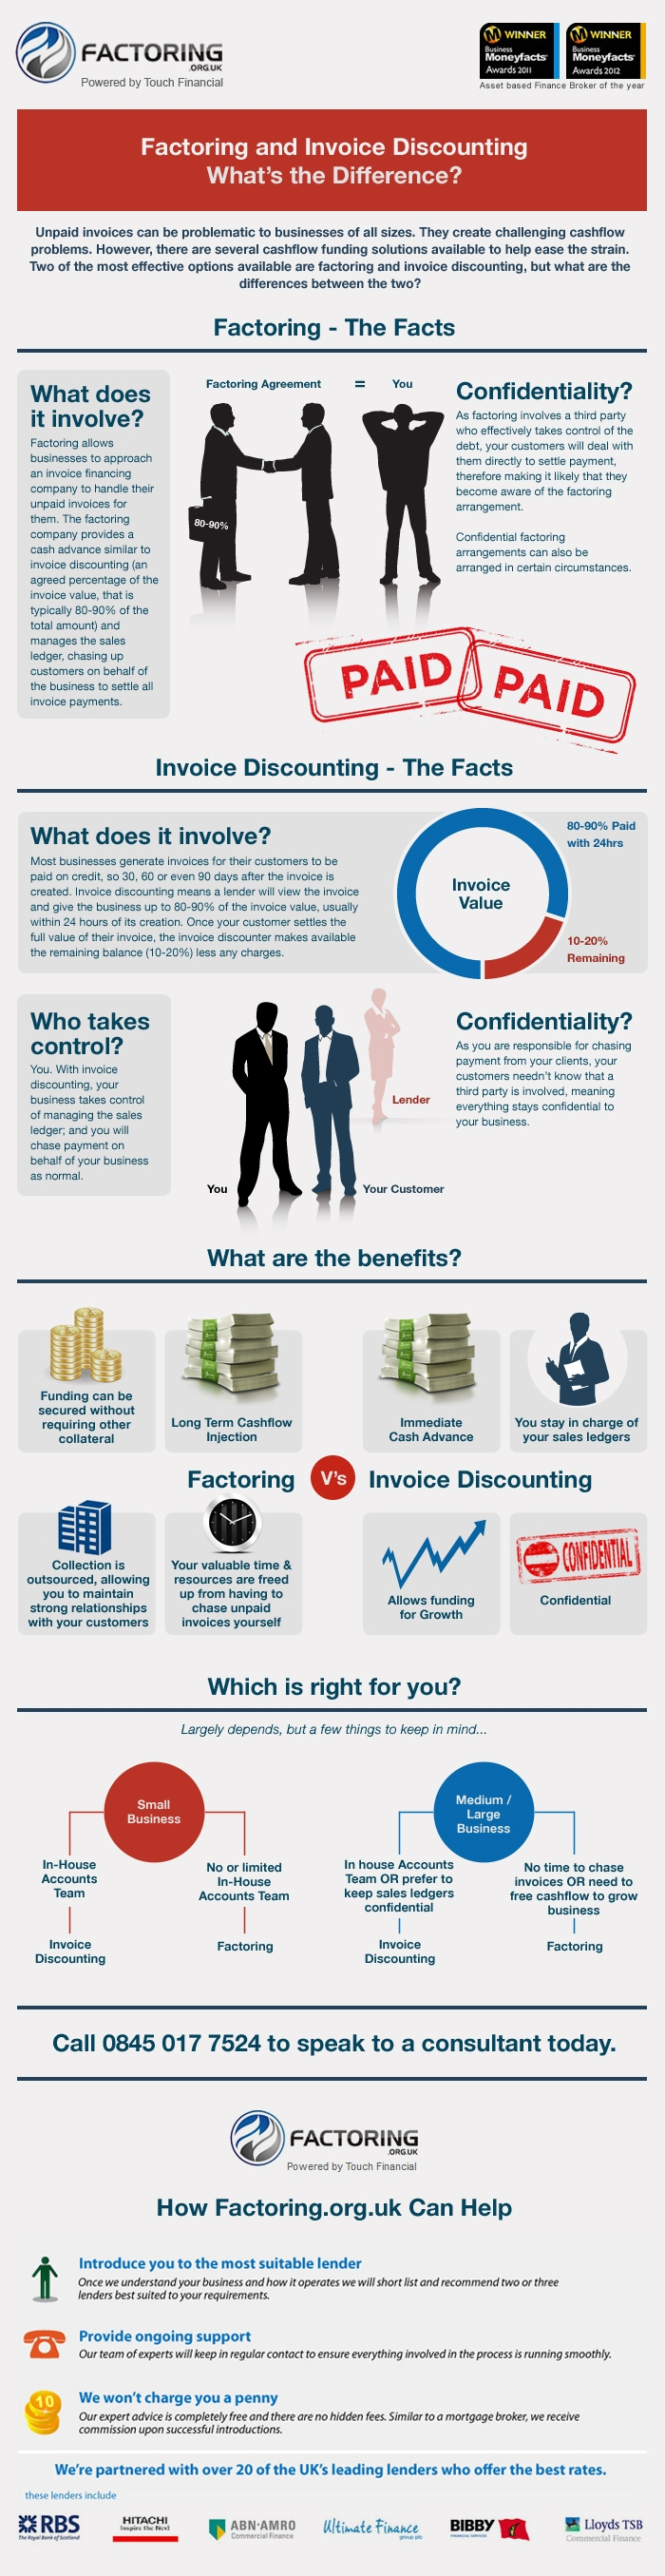 Difference Between Factoring And Invoice Discounting